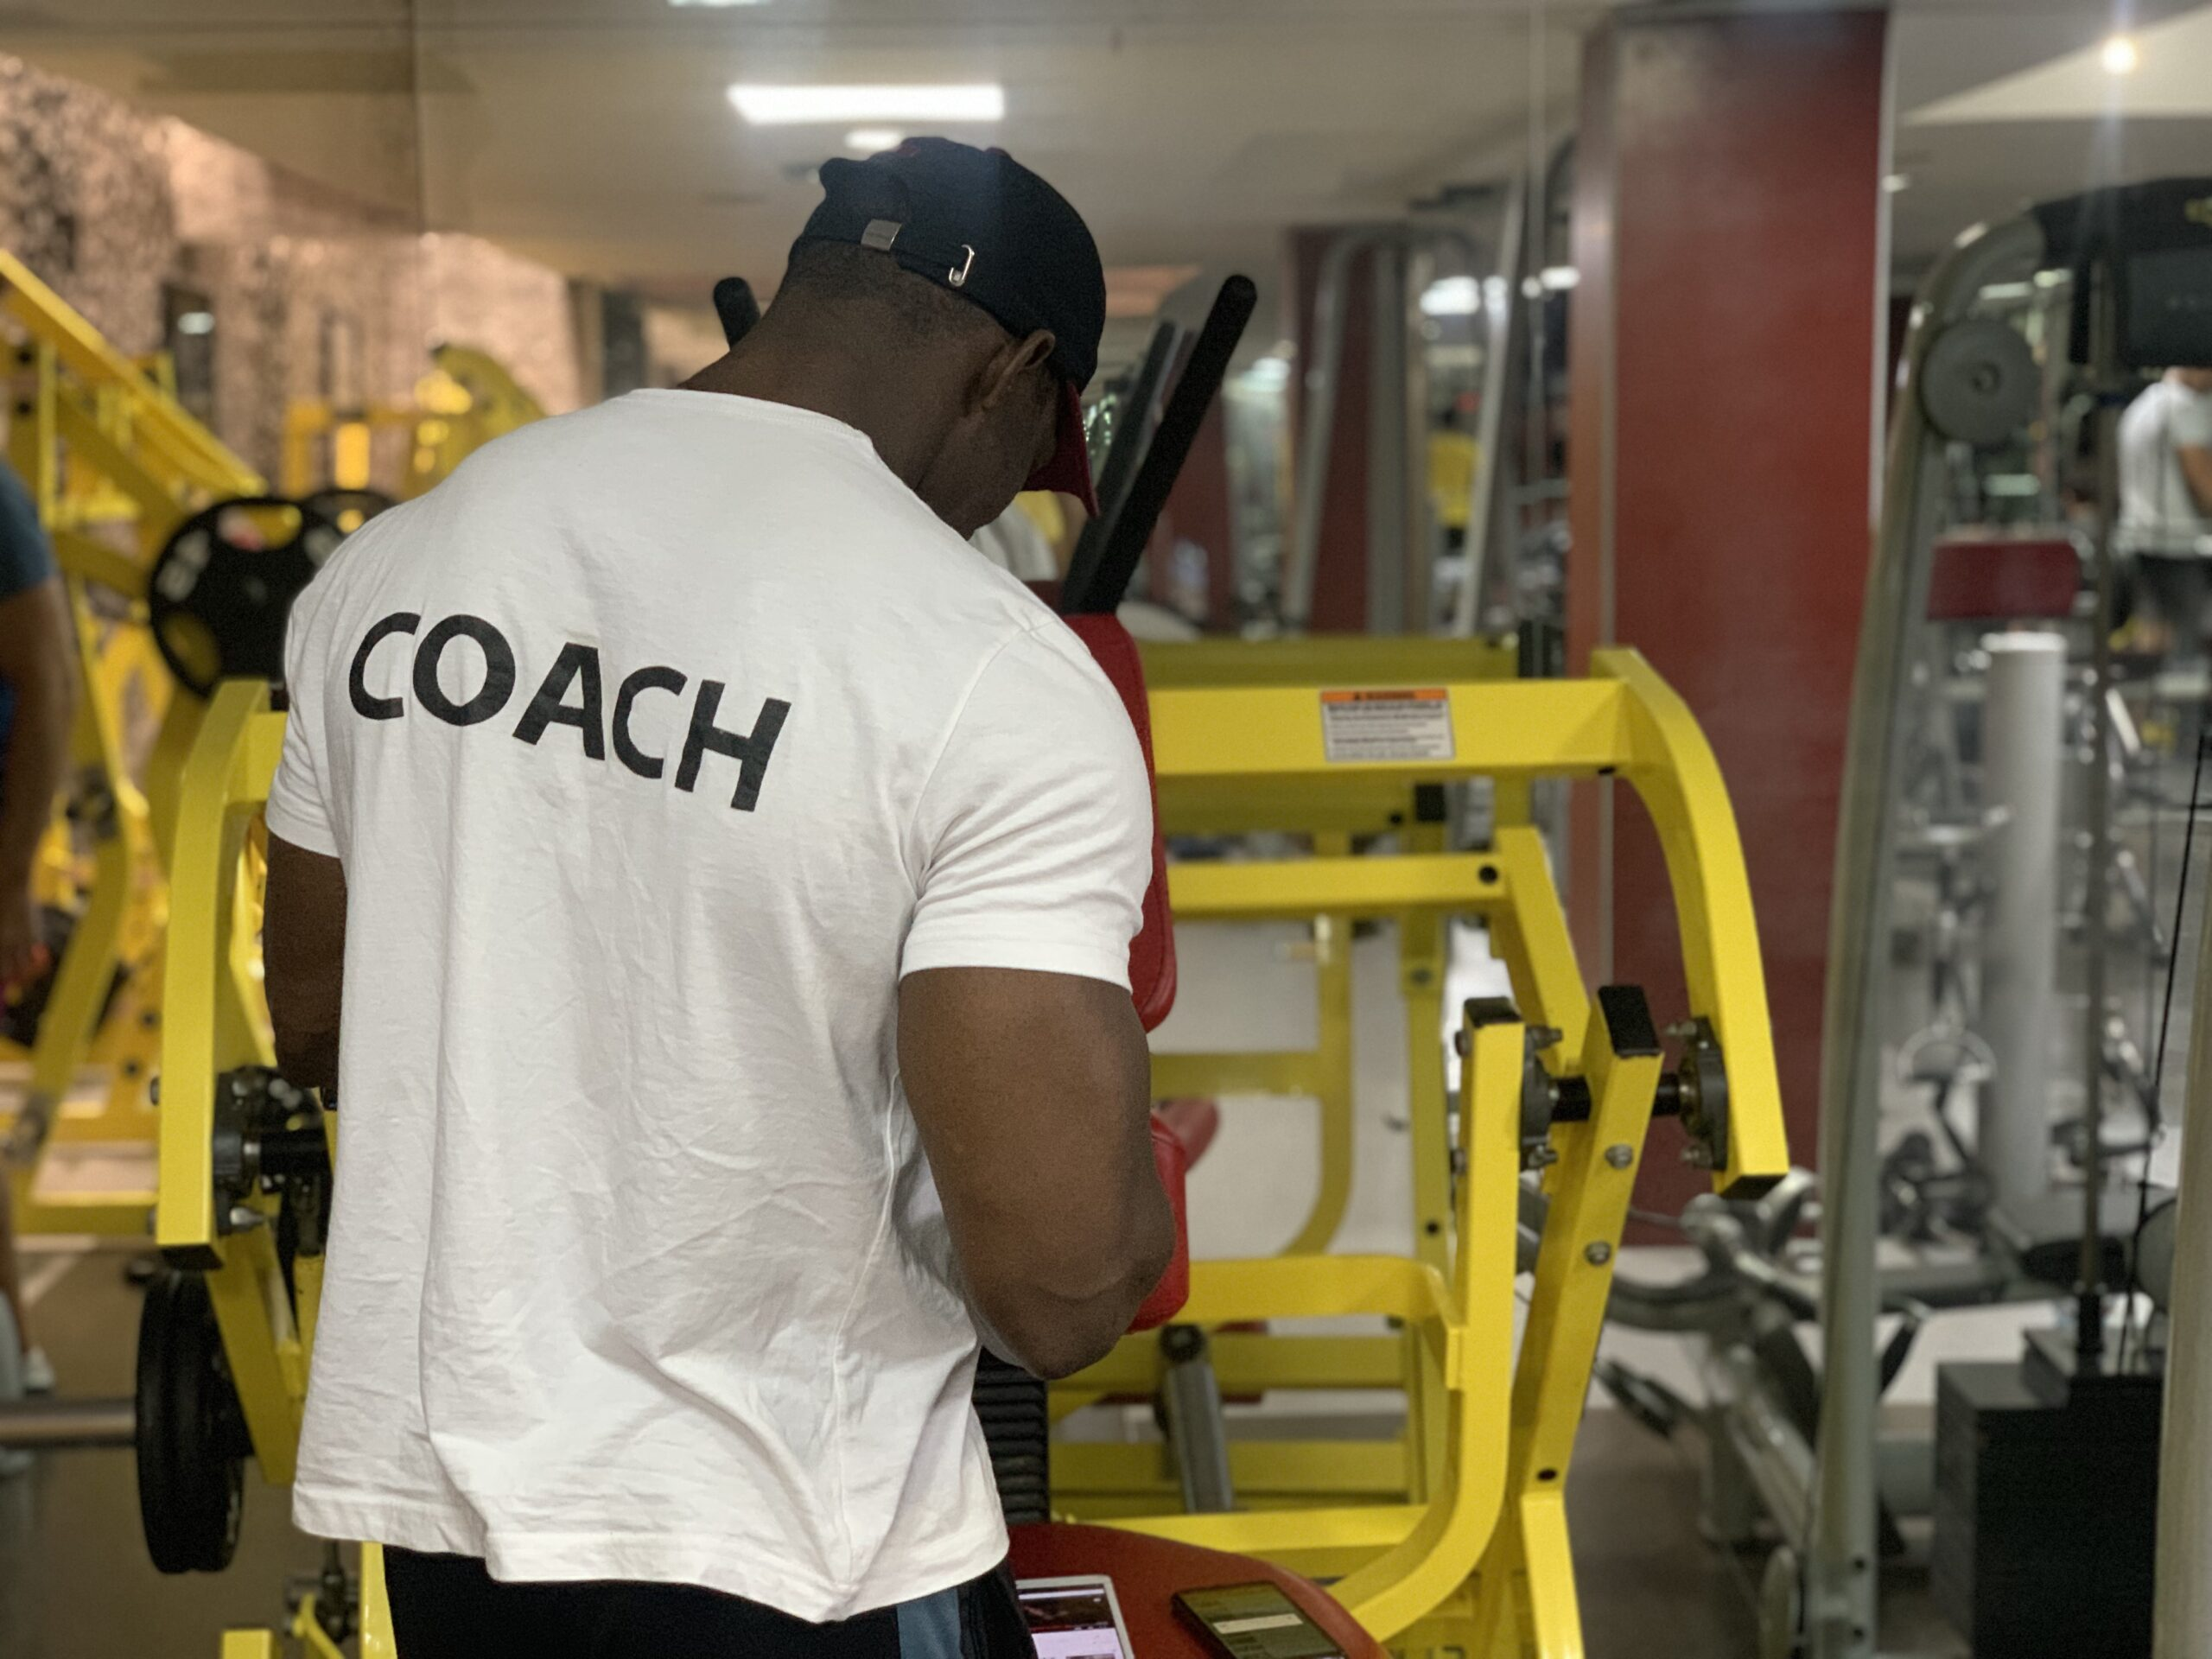 This is an image of Online fitness coach not learning how to coach scaled